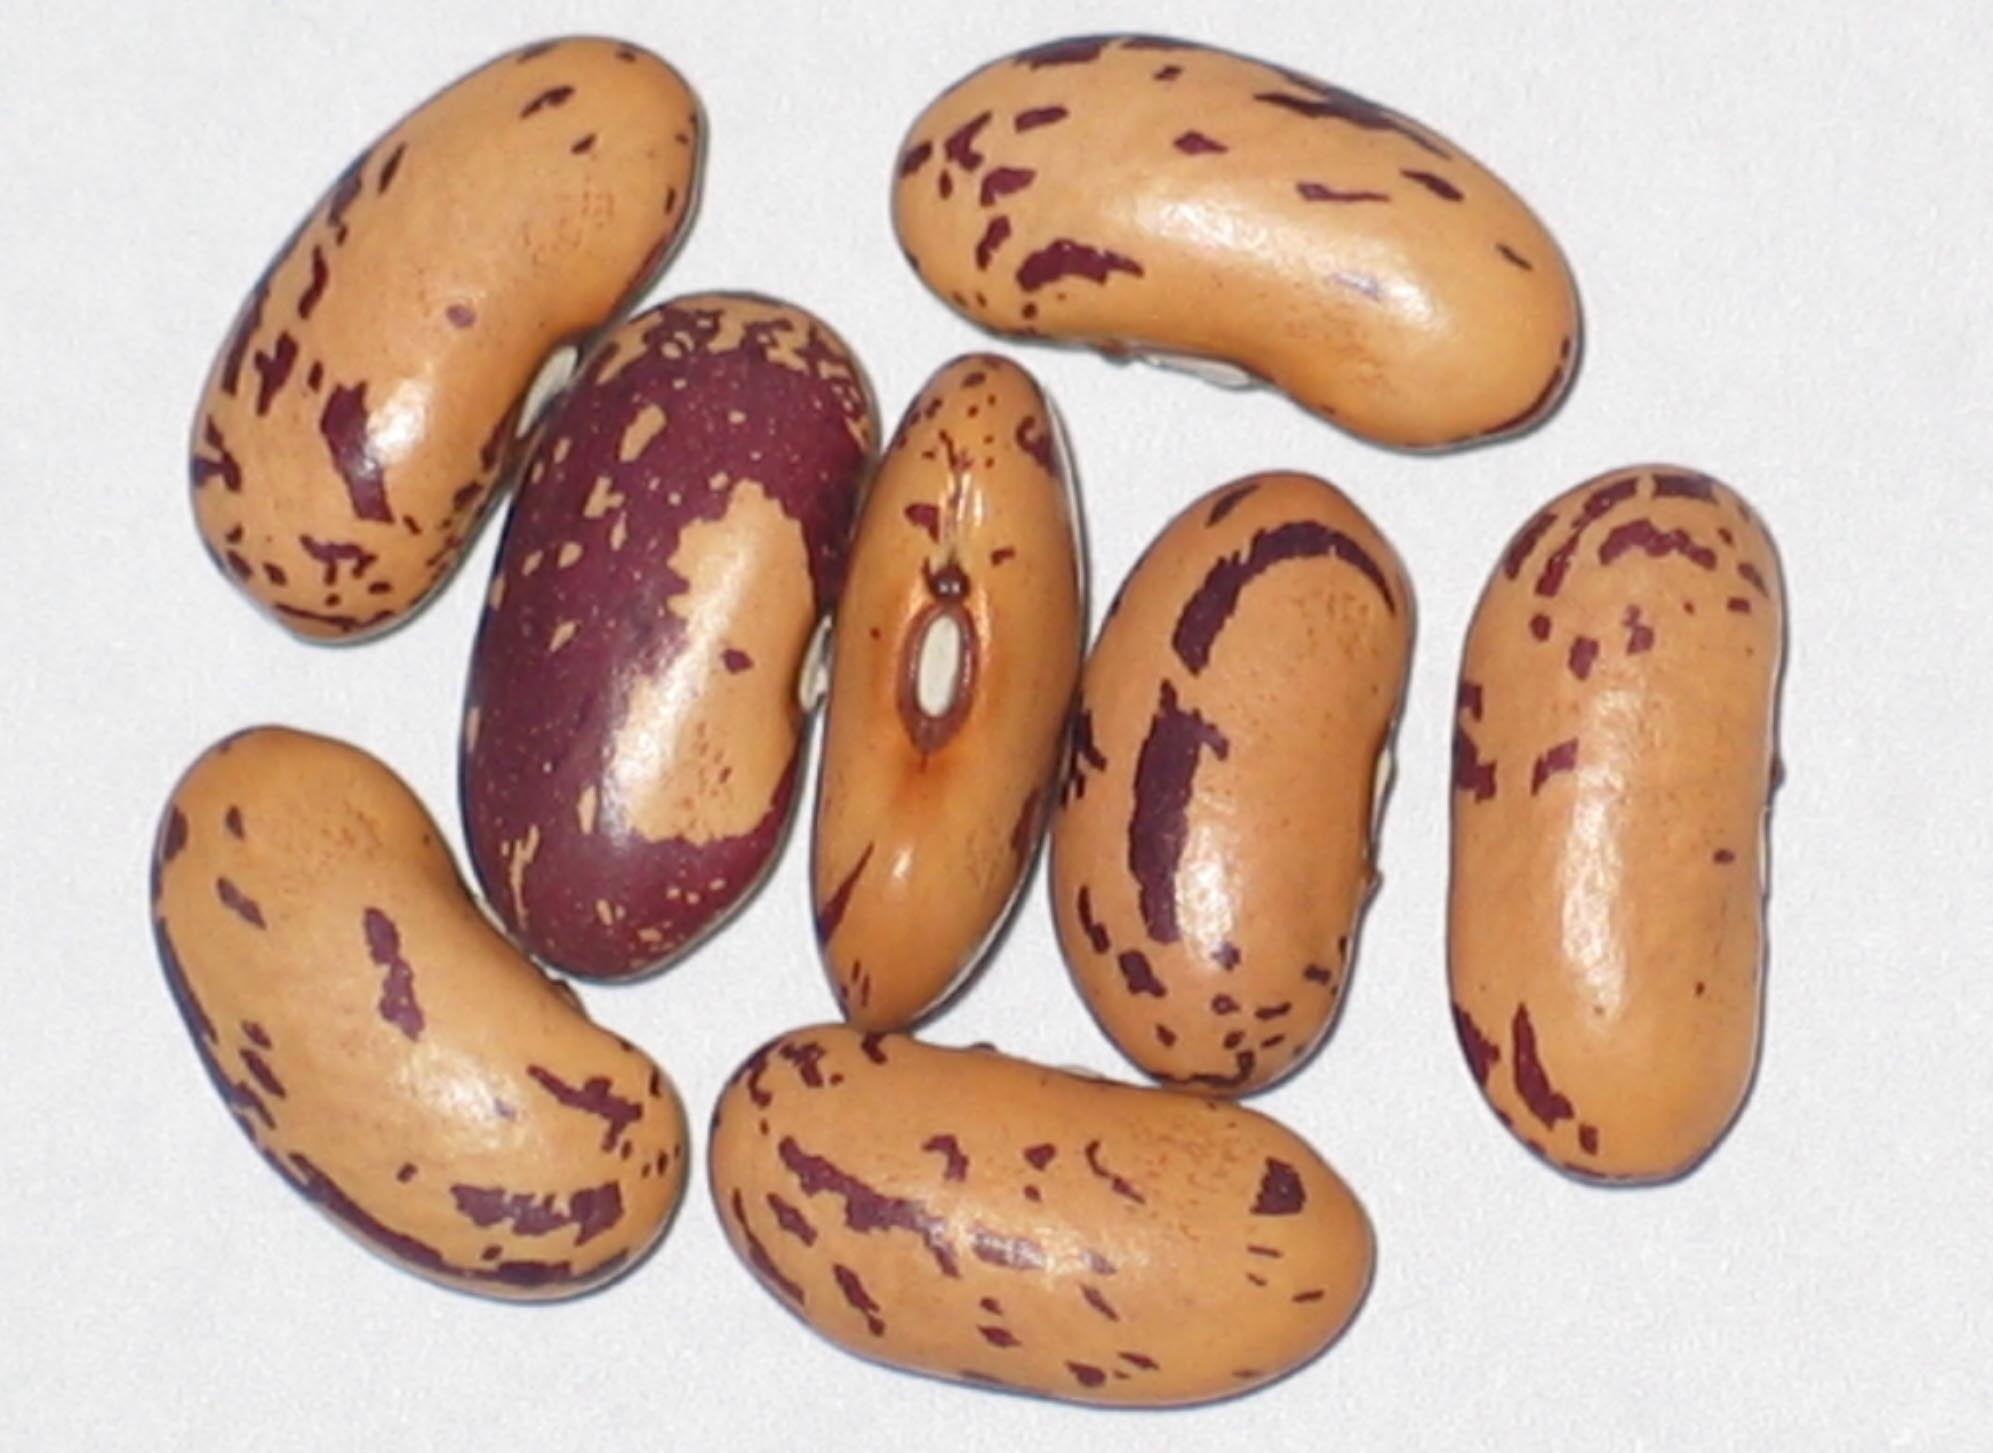 image of John's Bean beans